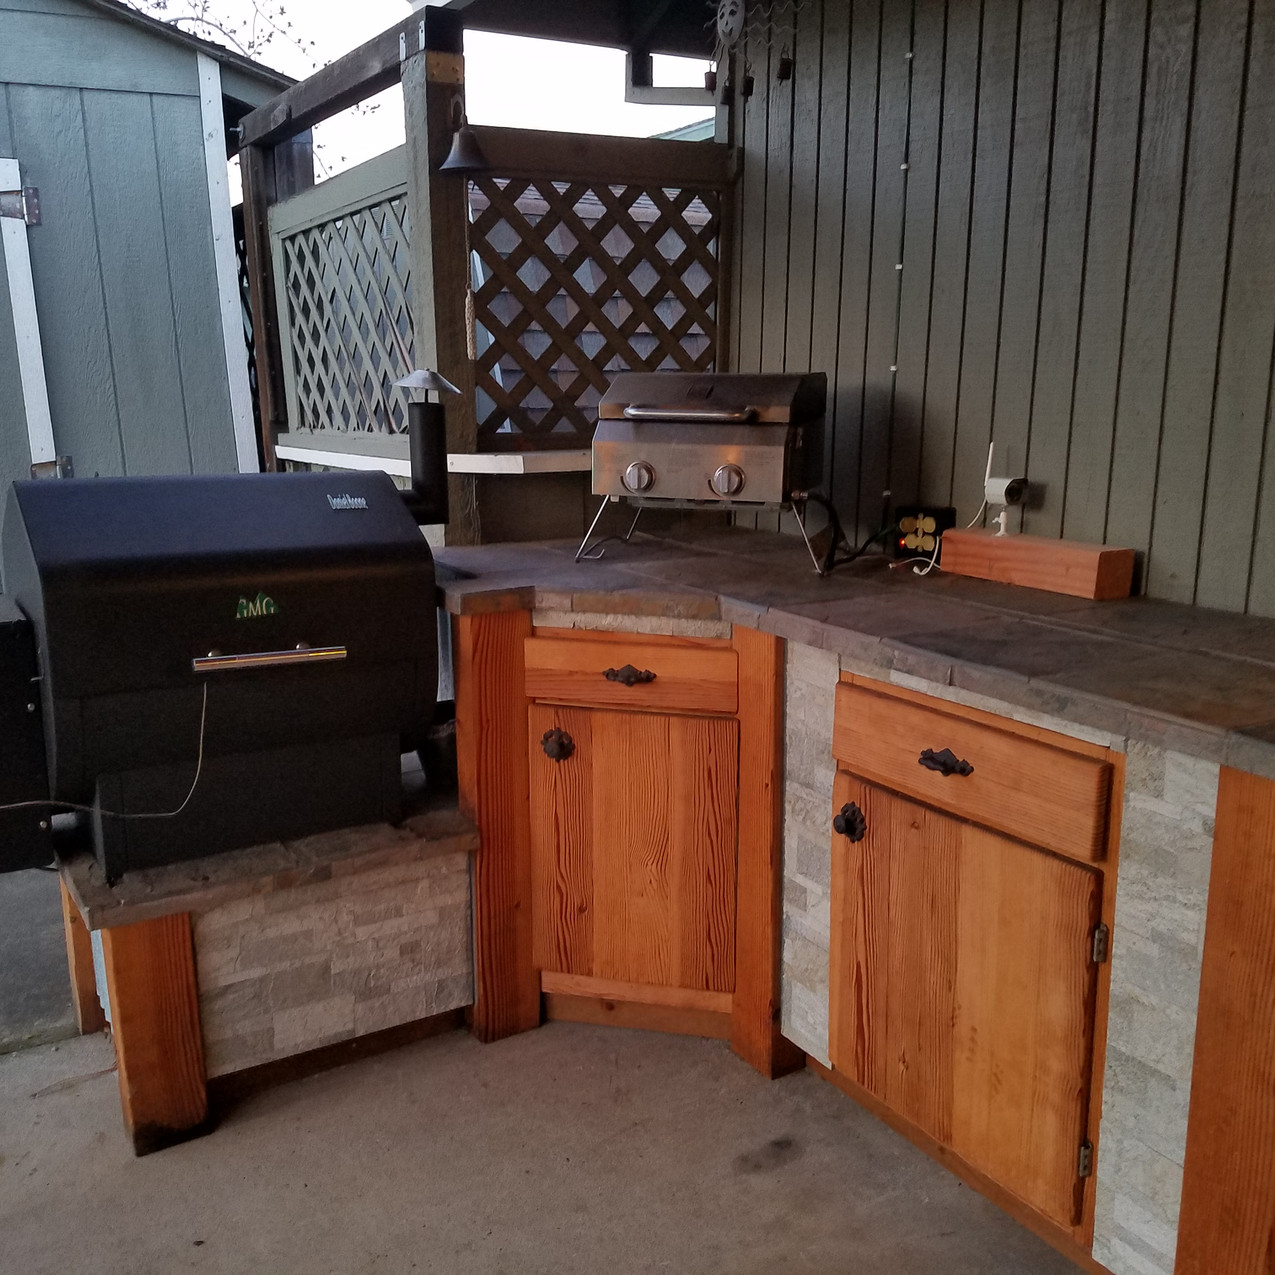 Our new outdoor kitchen!